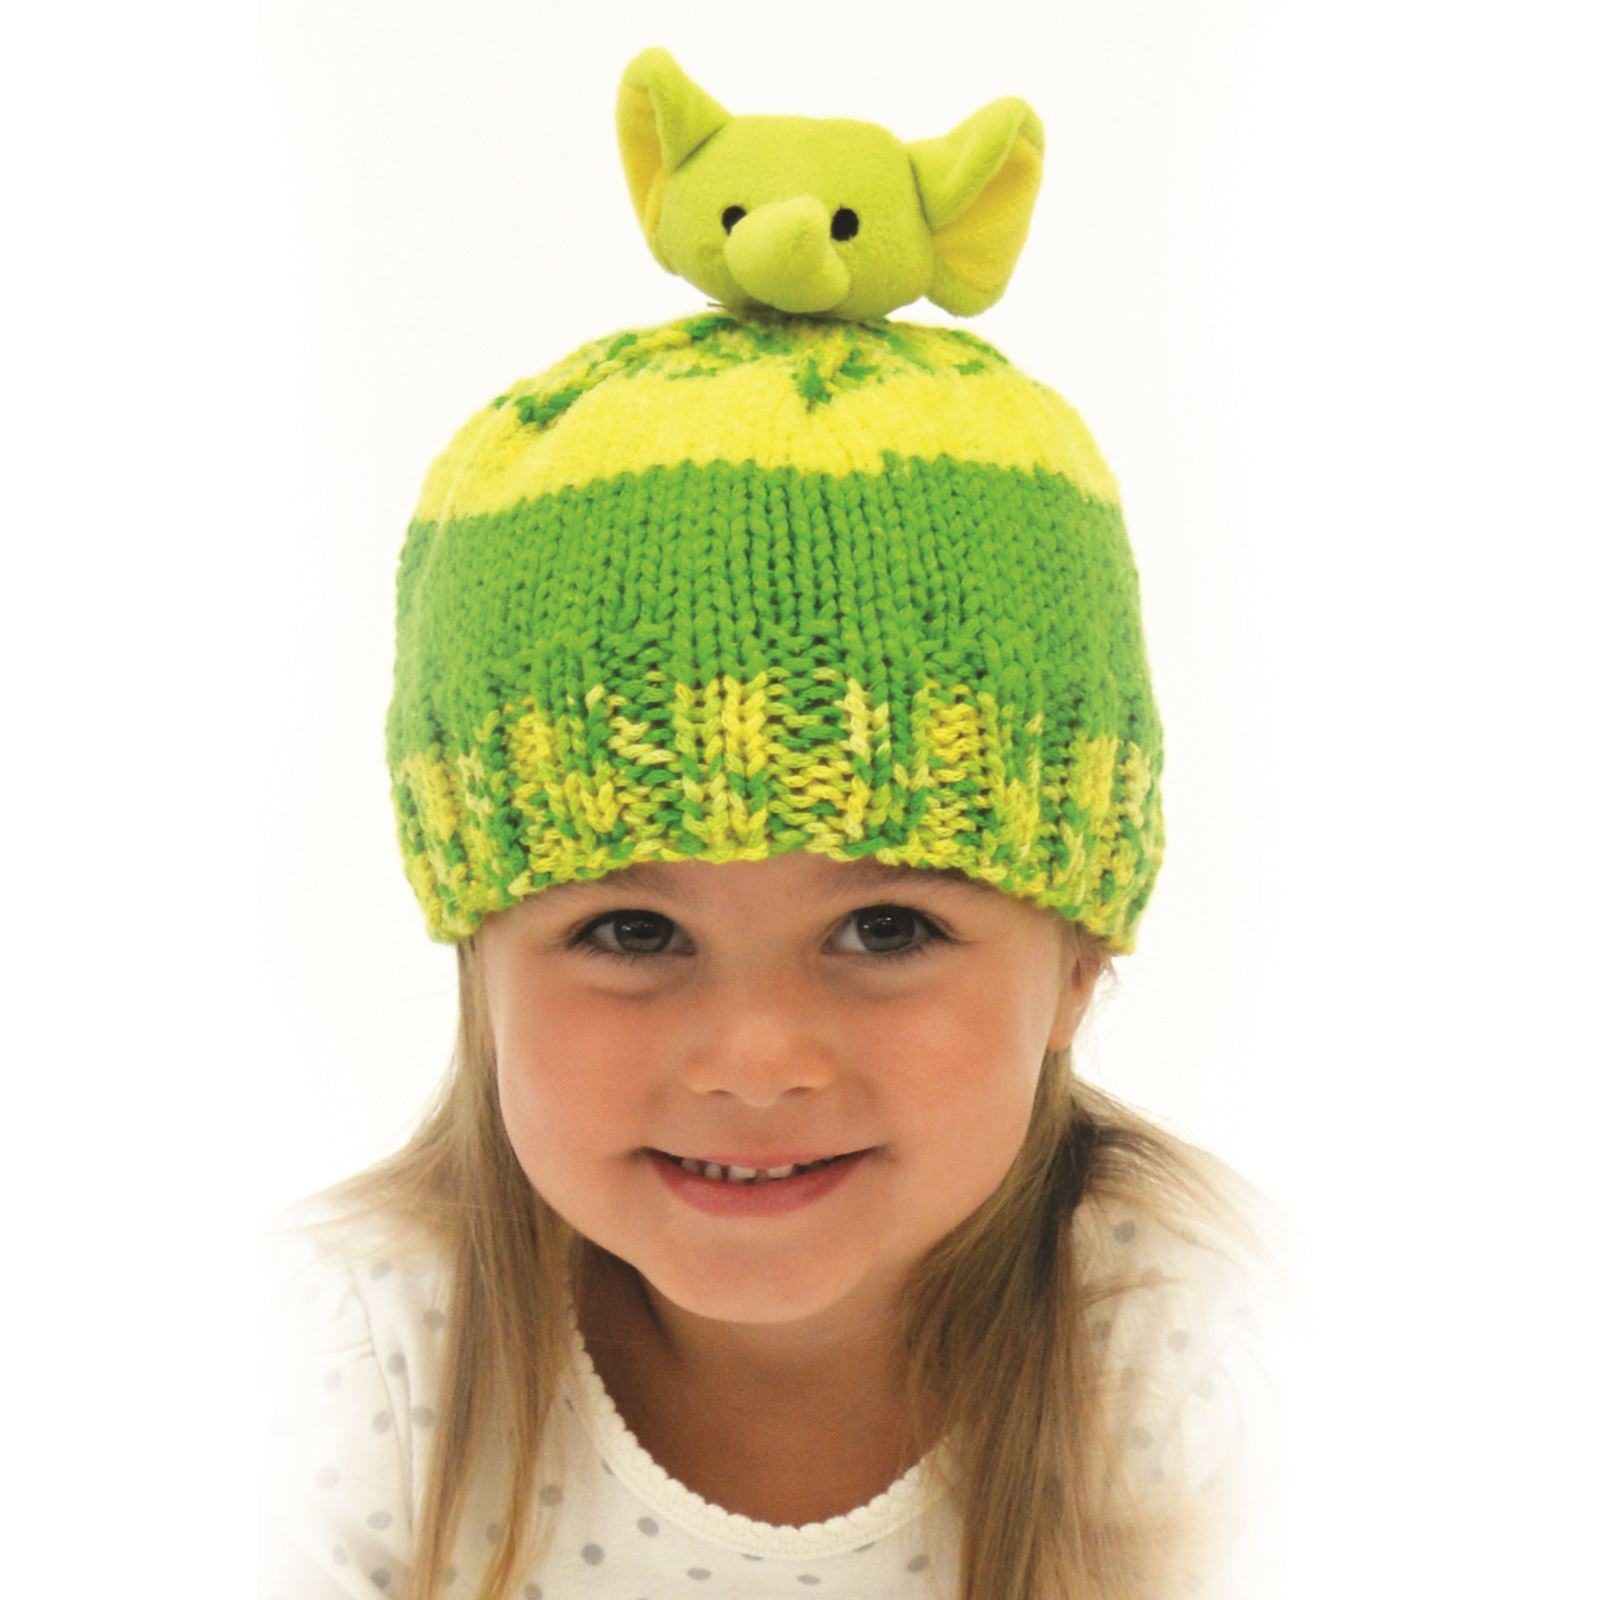 Knitting Patterns For Childrens Characters : DMC Top This! Kids Hat Knitting Kits Characters Christmas ...